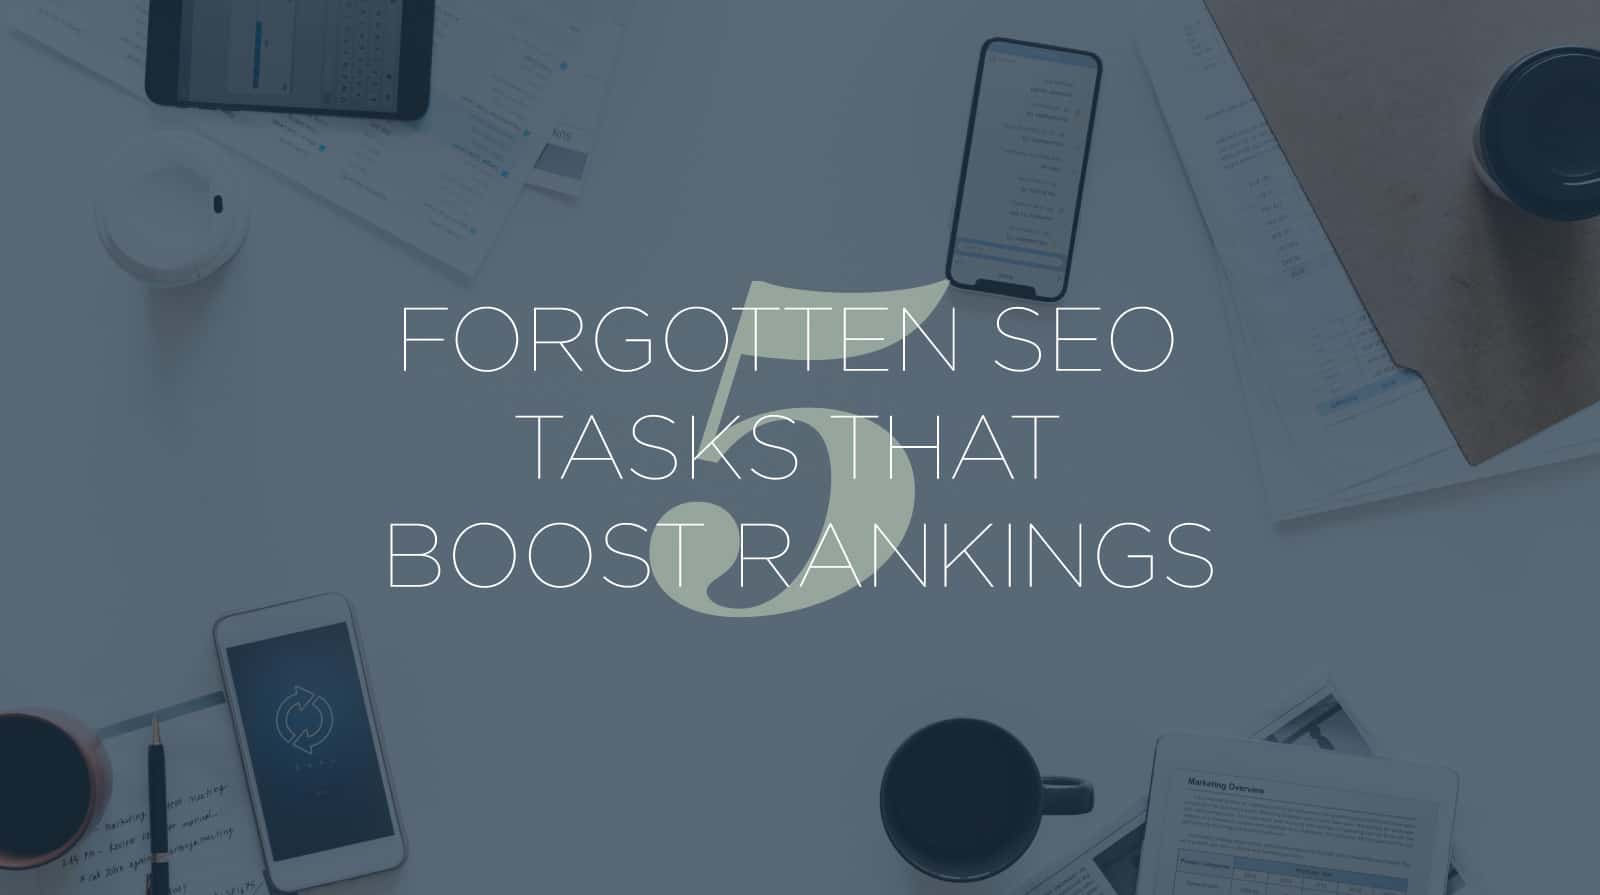 5 Forgotten SEO Tasks That Boost Rankings 6